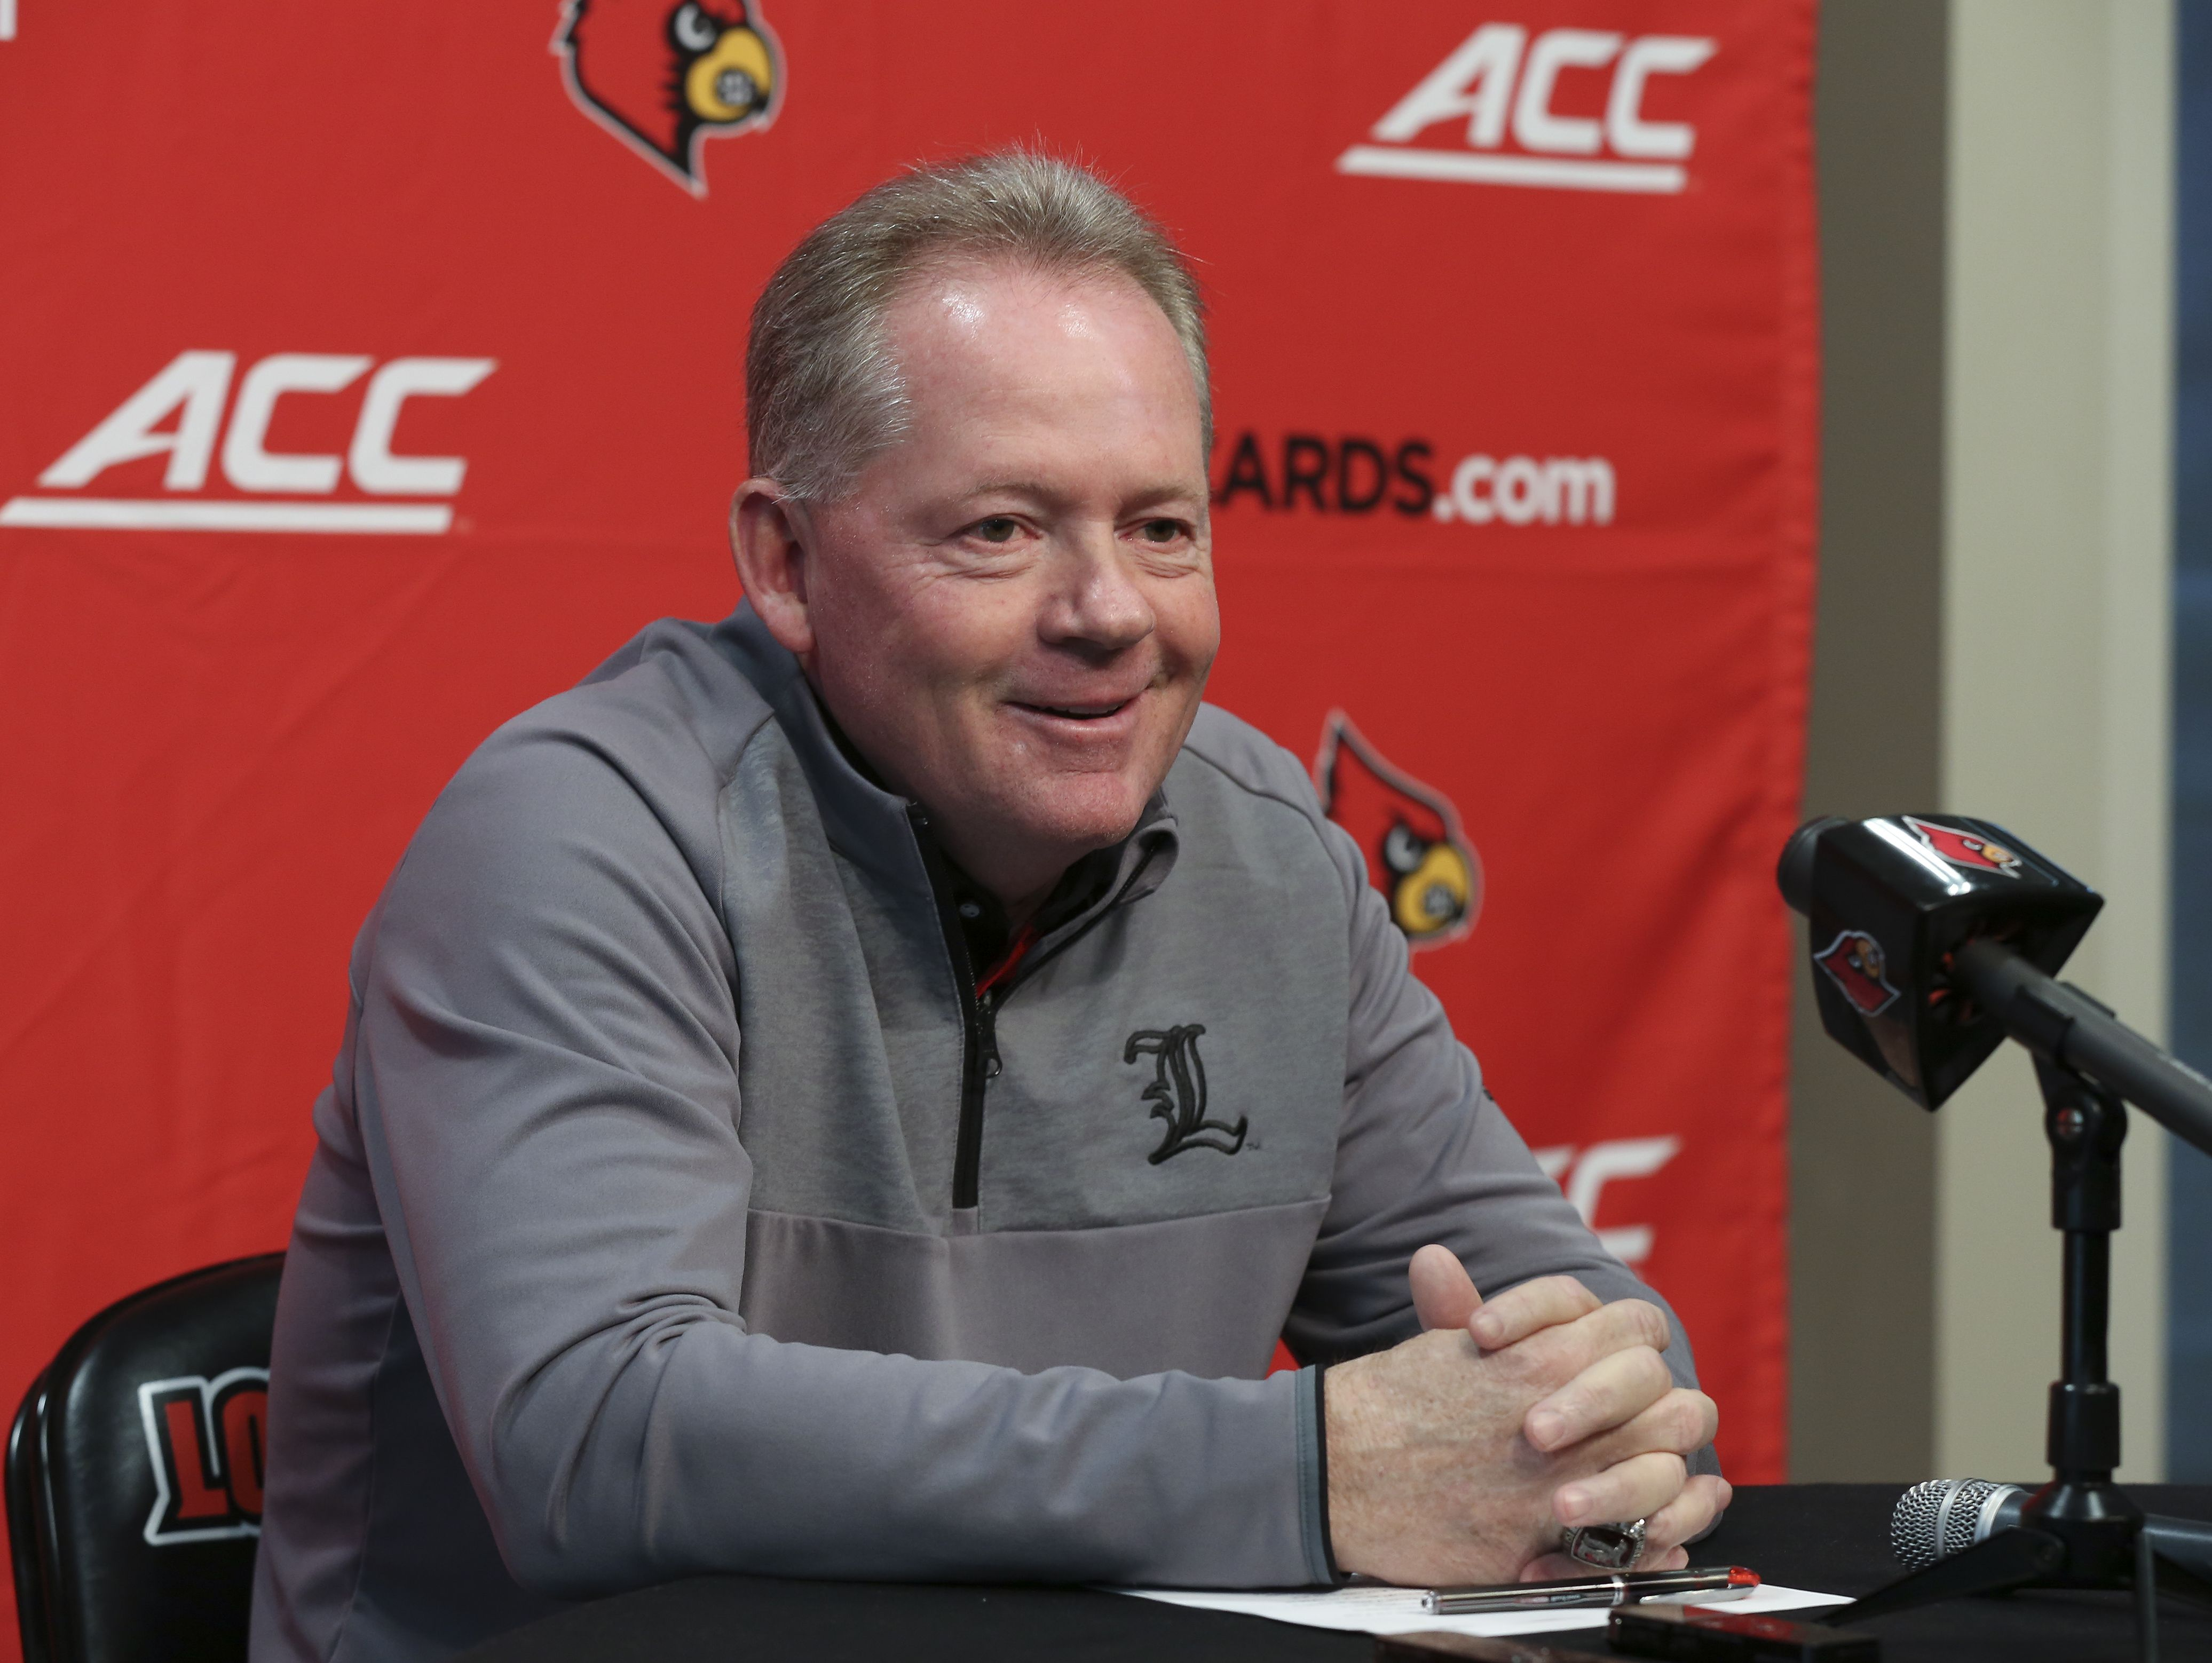 U of L head football coach Bobby Petrino speaks to the media on National Signing Day for 2017. Feb. 1, 2017